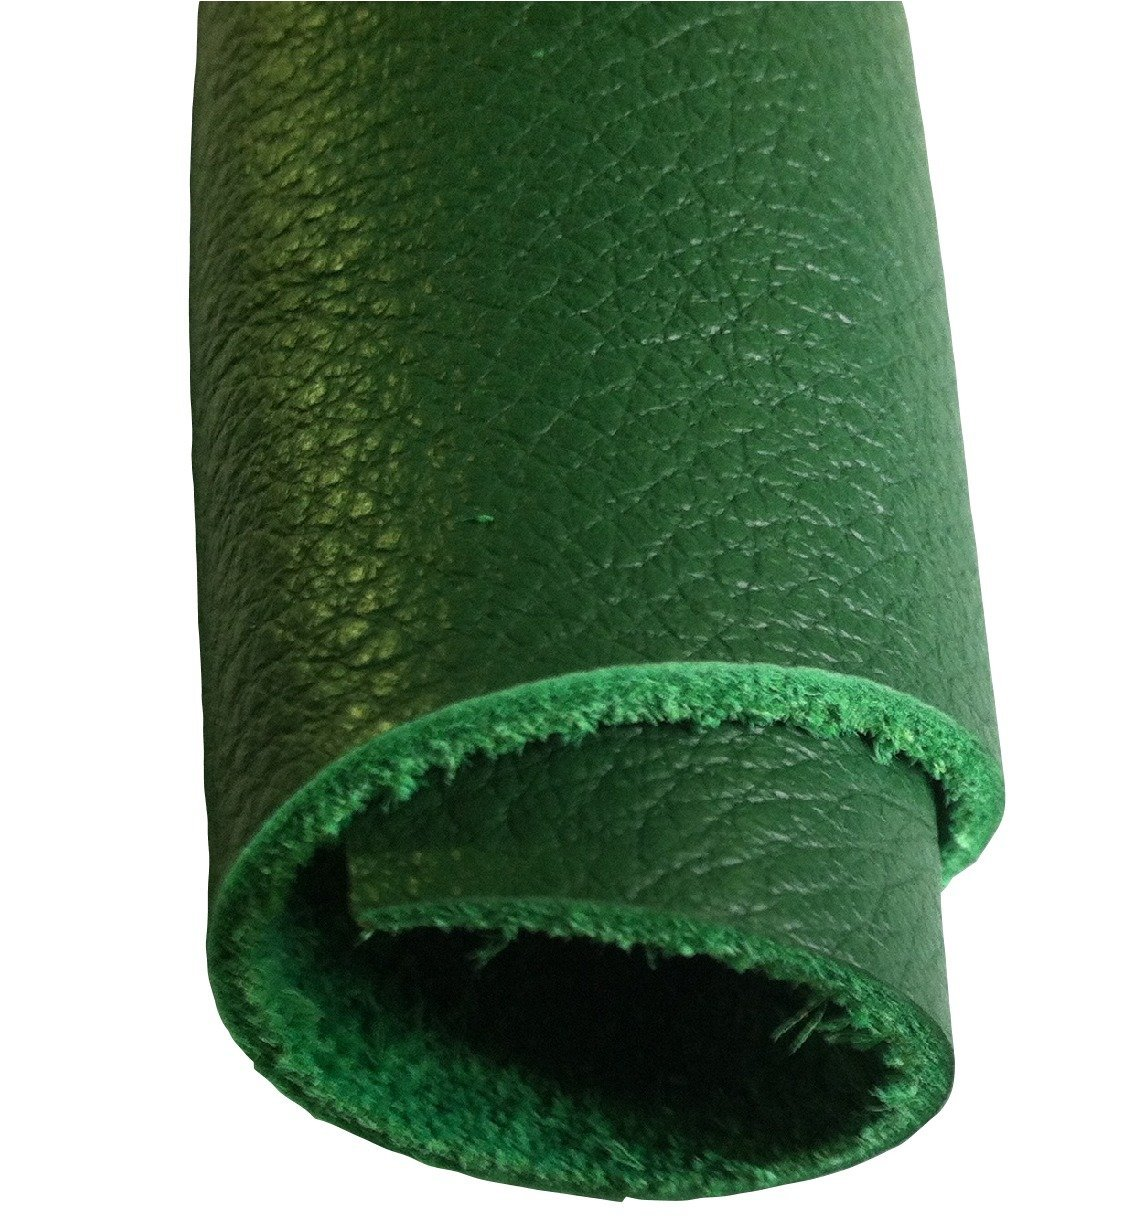 Exotic Leather Hides - Leather Hide Skins 7 to 10 Sf - Various Designs & Colors (Green)